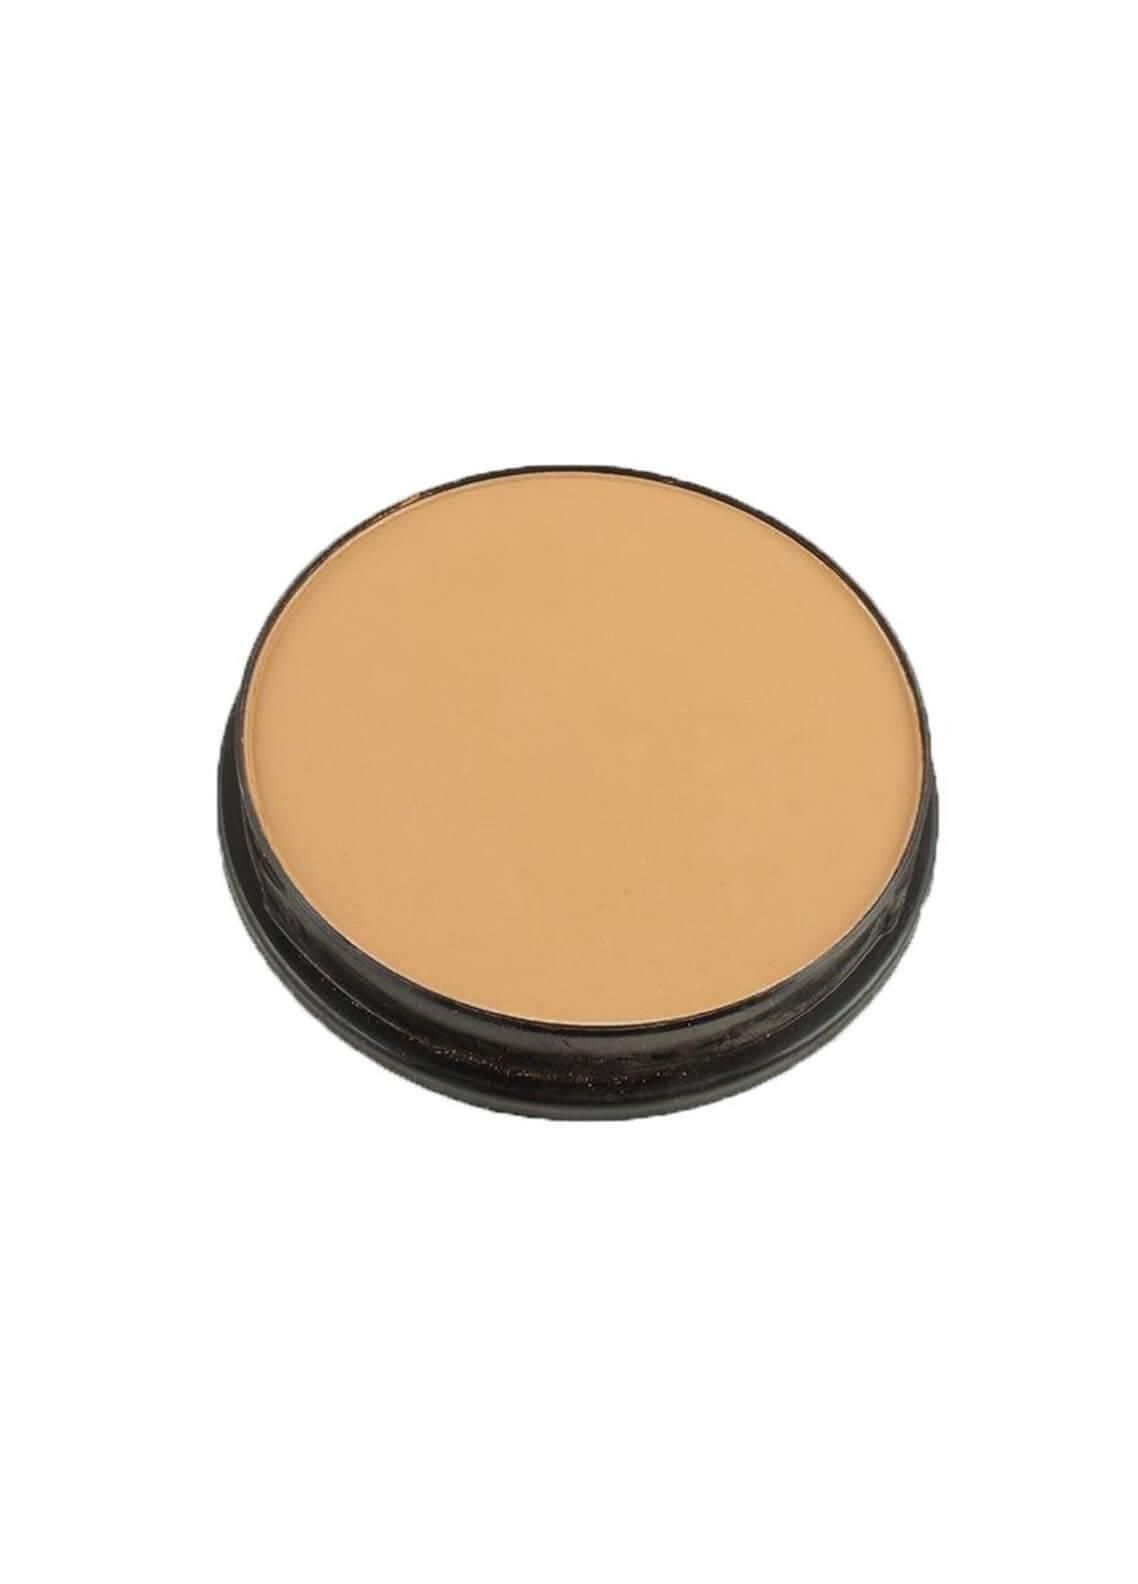 Sophia Asley Oil Free Pan Cake with SPF45 UV Protection - Chinese